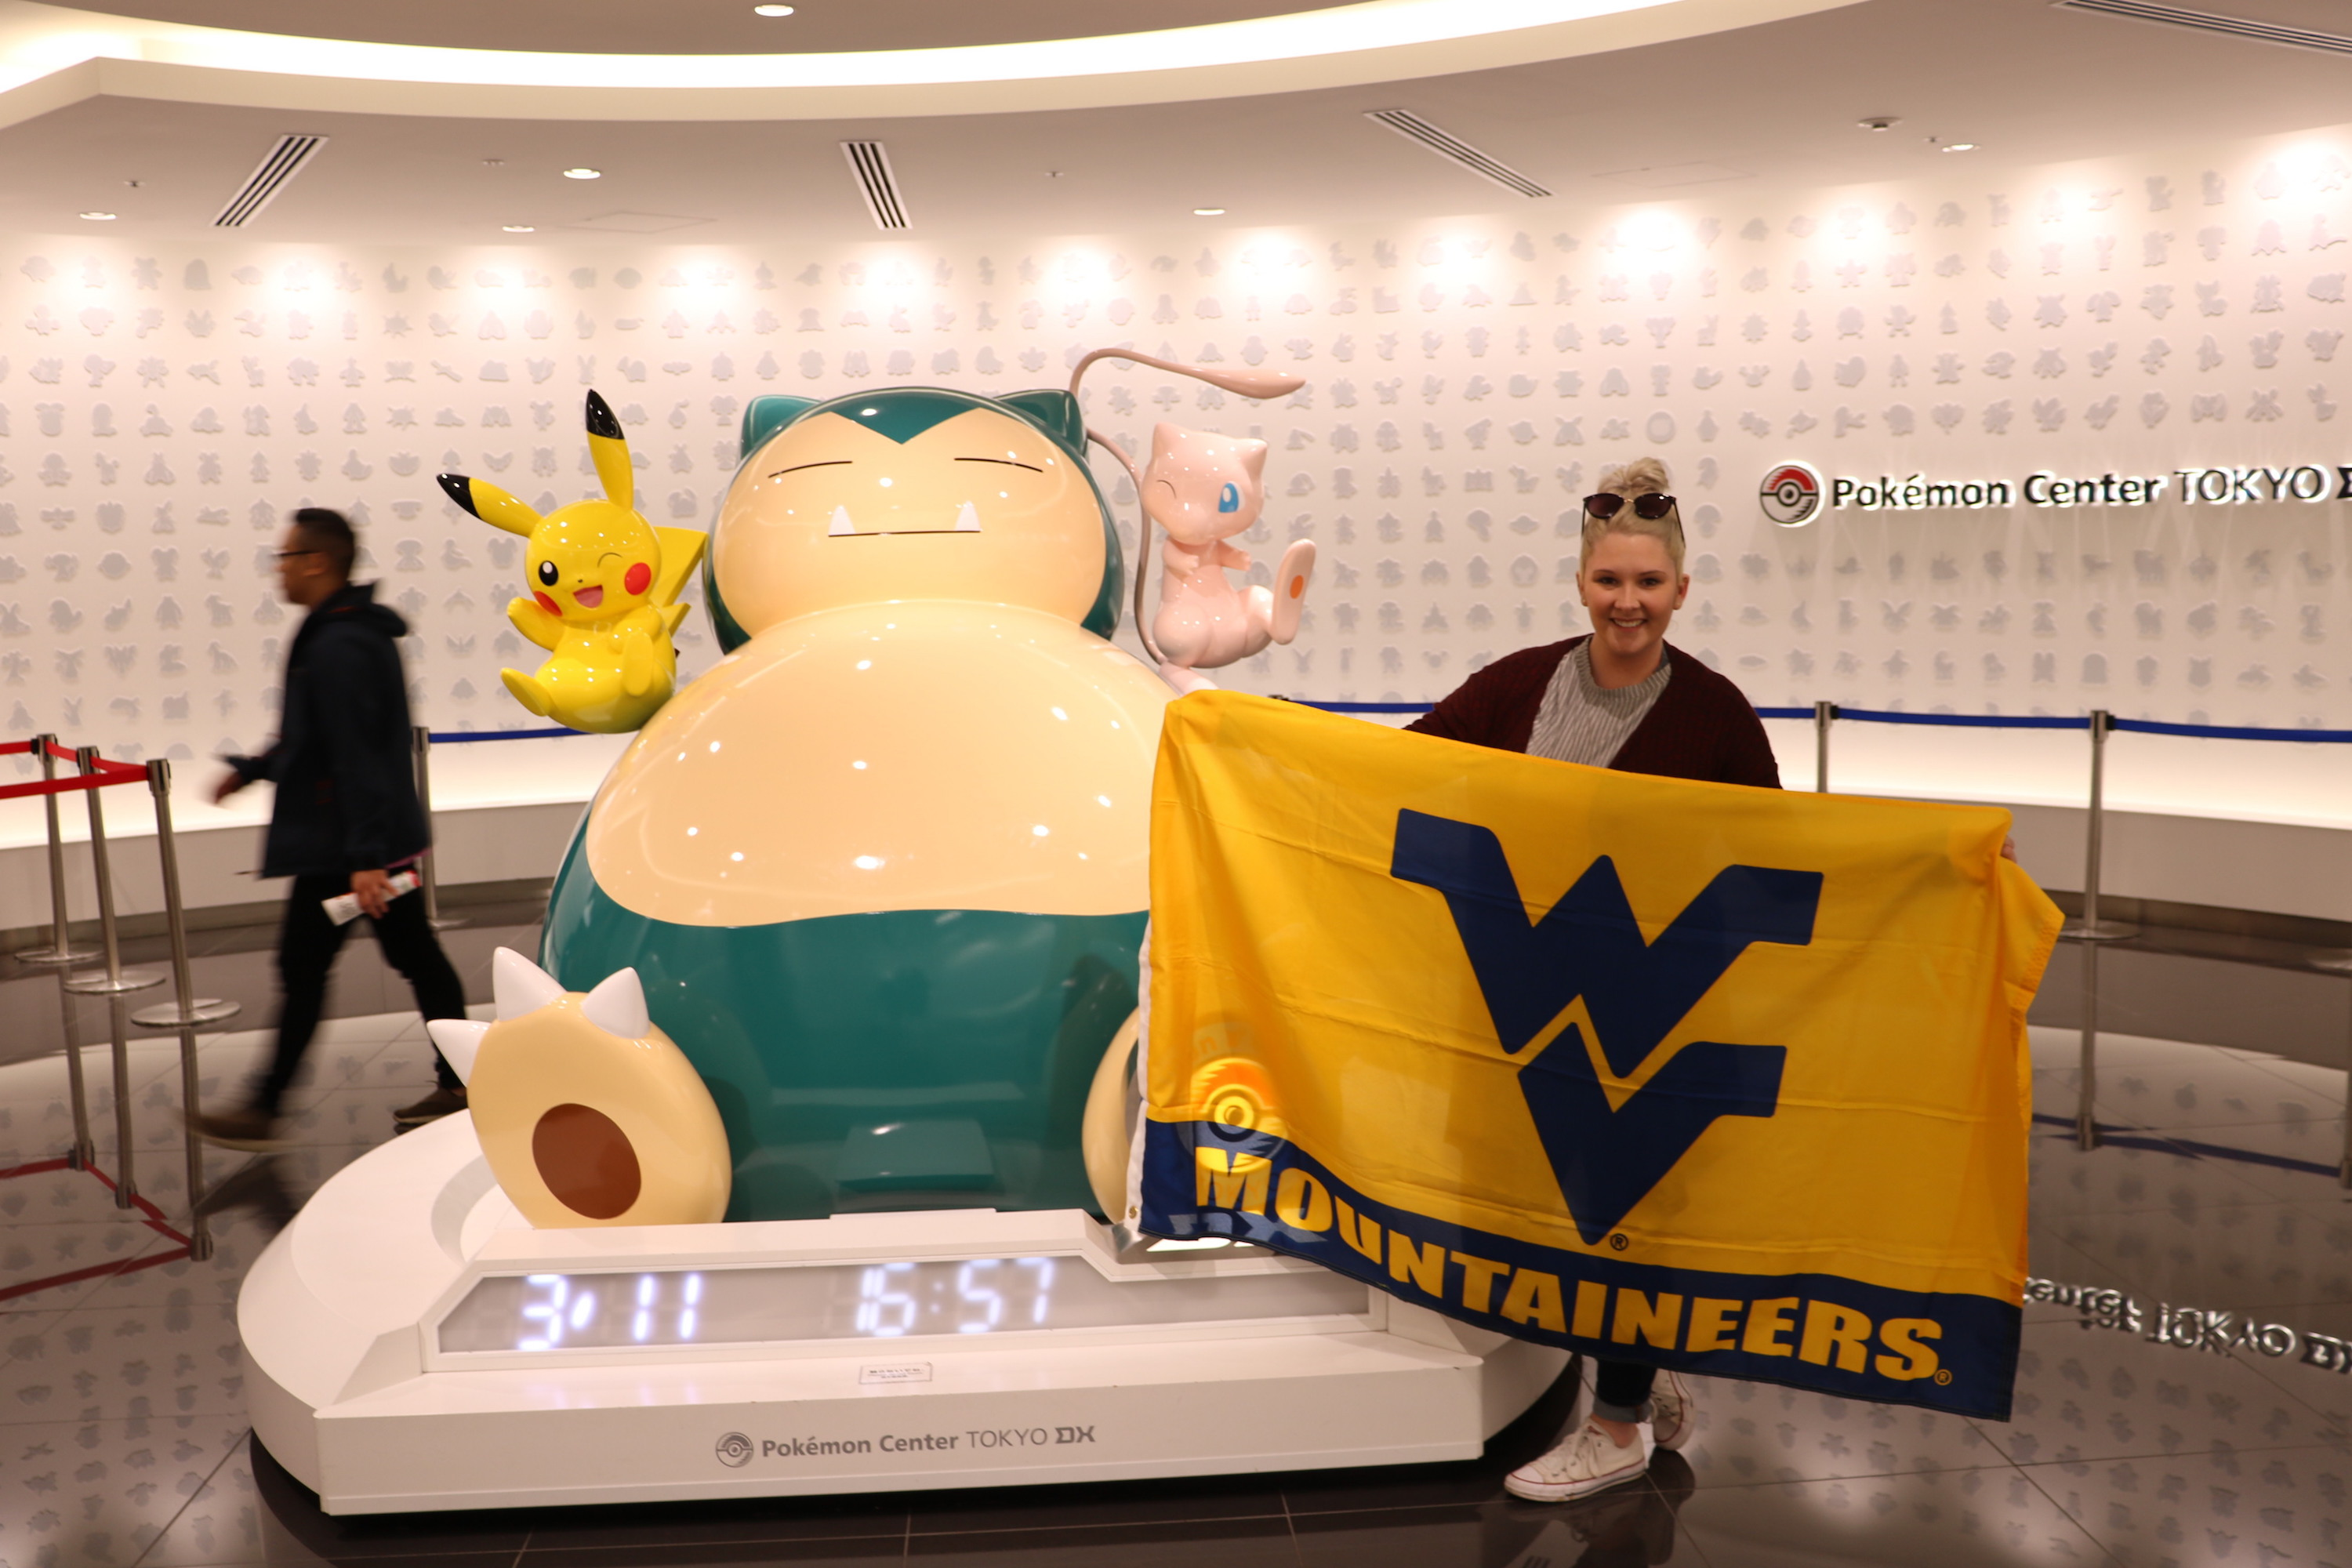 West Virginia University student Kylie Wilson is using her research on health campaigns to improve the lives of individuals who suffer from mental illness.